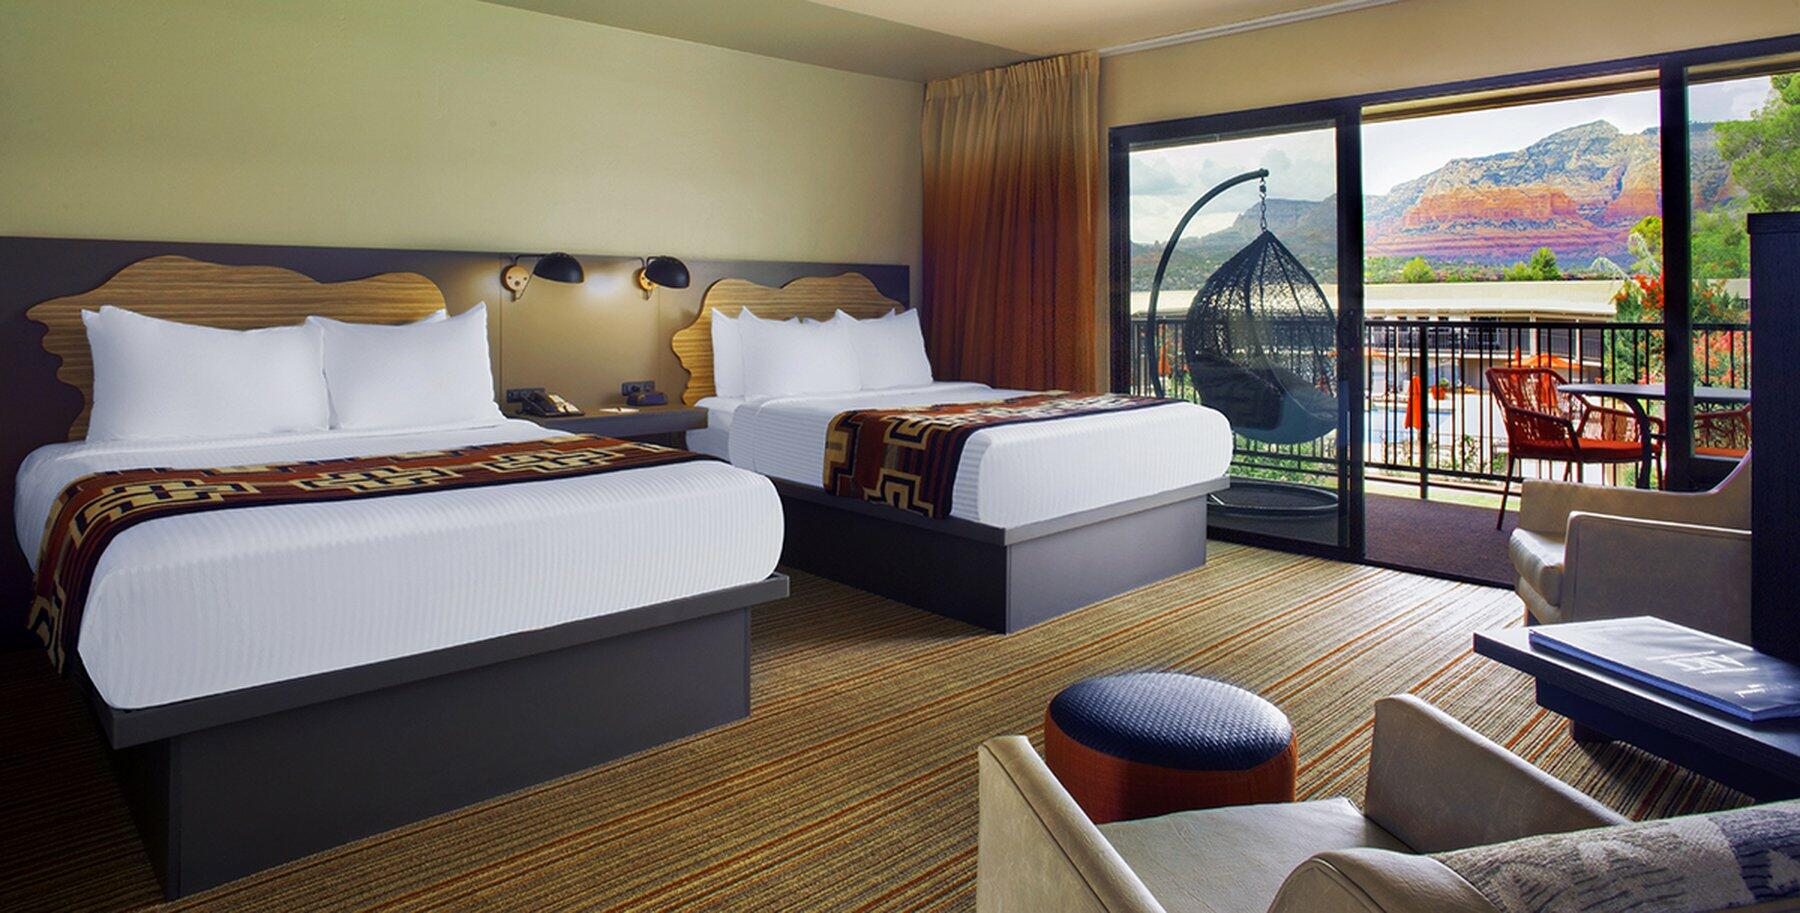 Courtyard suite hotel room, two queen beds & view of Red Rocks.